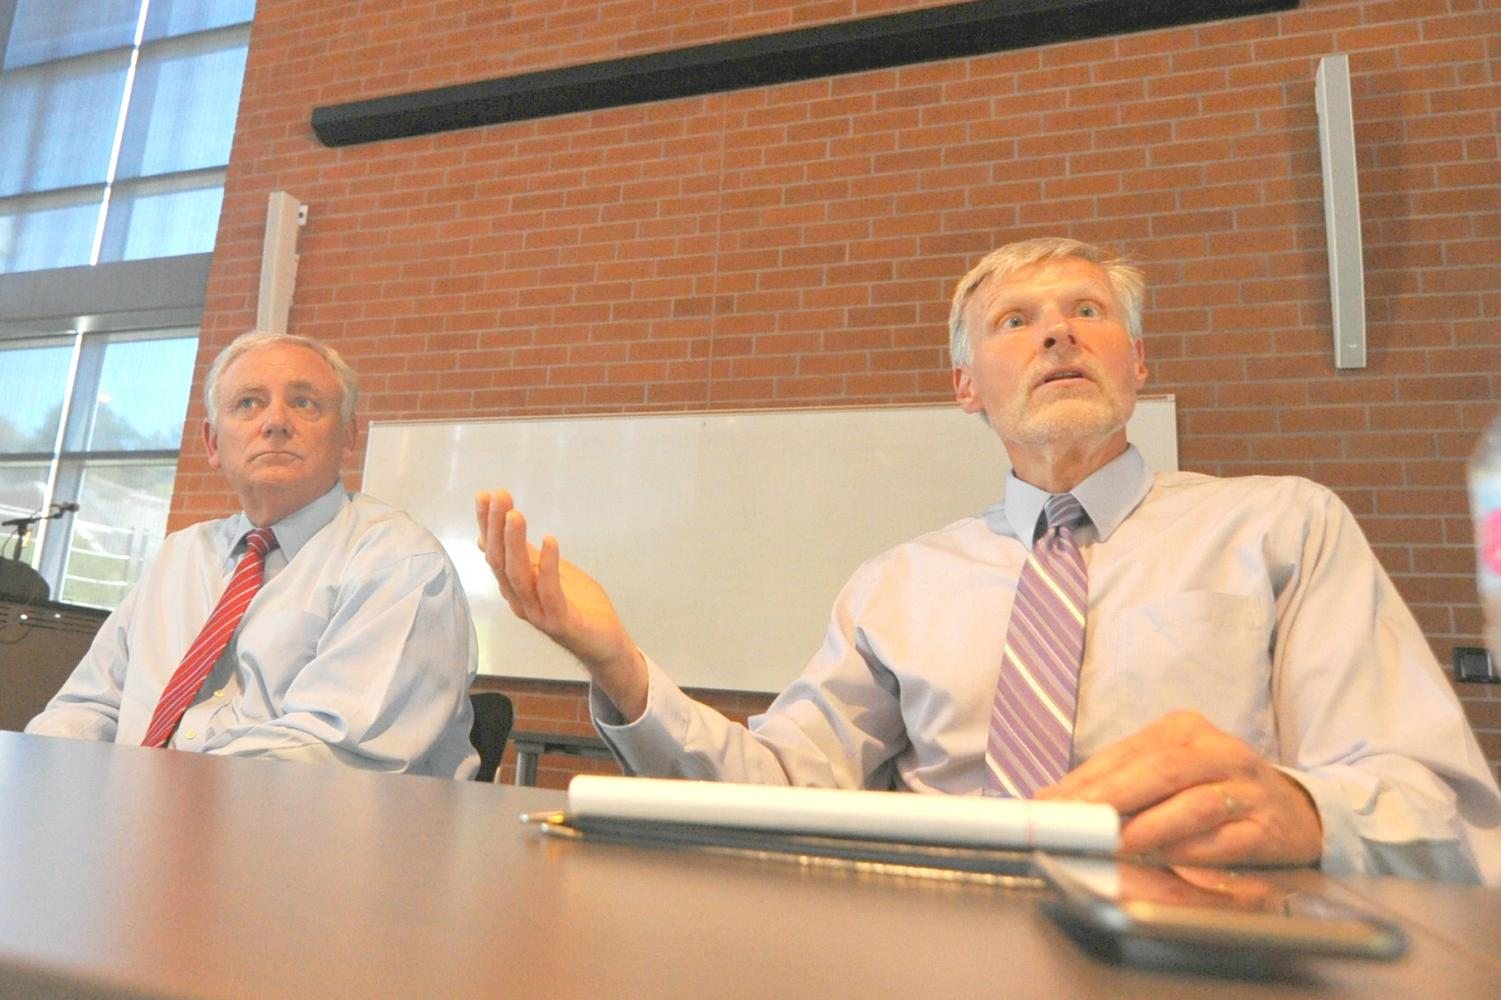 District Vice Chancellor Eugene Huff (right) and Chancellor Fred Wood (left) discuss the formation of an interim presidential hiring committee at a Fireside Hall meeting with CCC staff on Aug. 15 during a public forum.